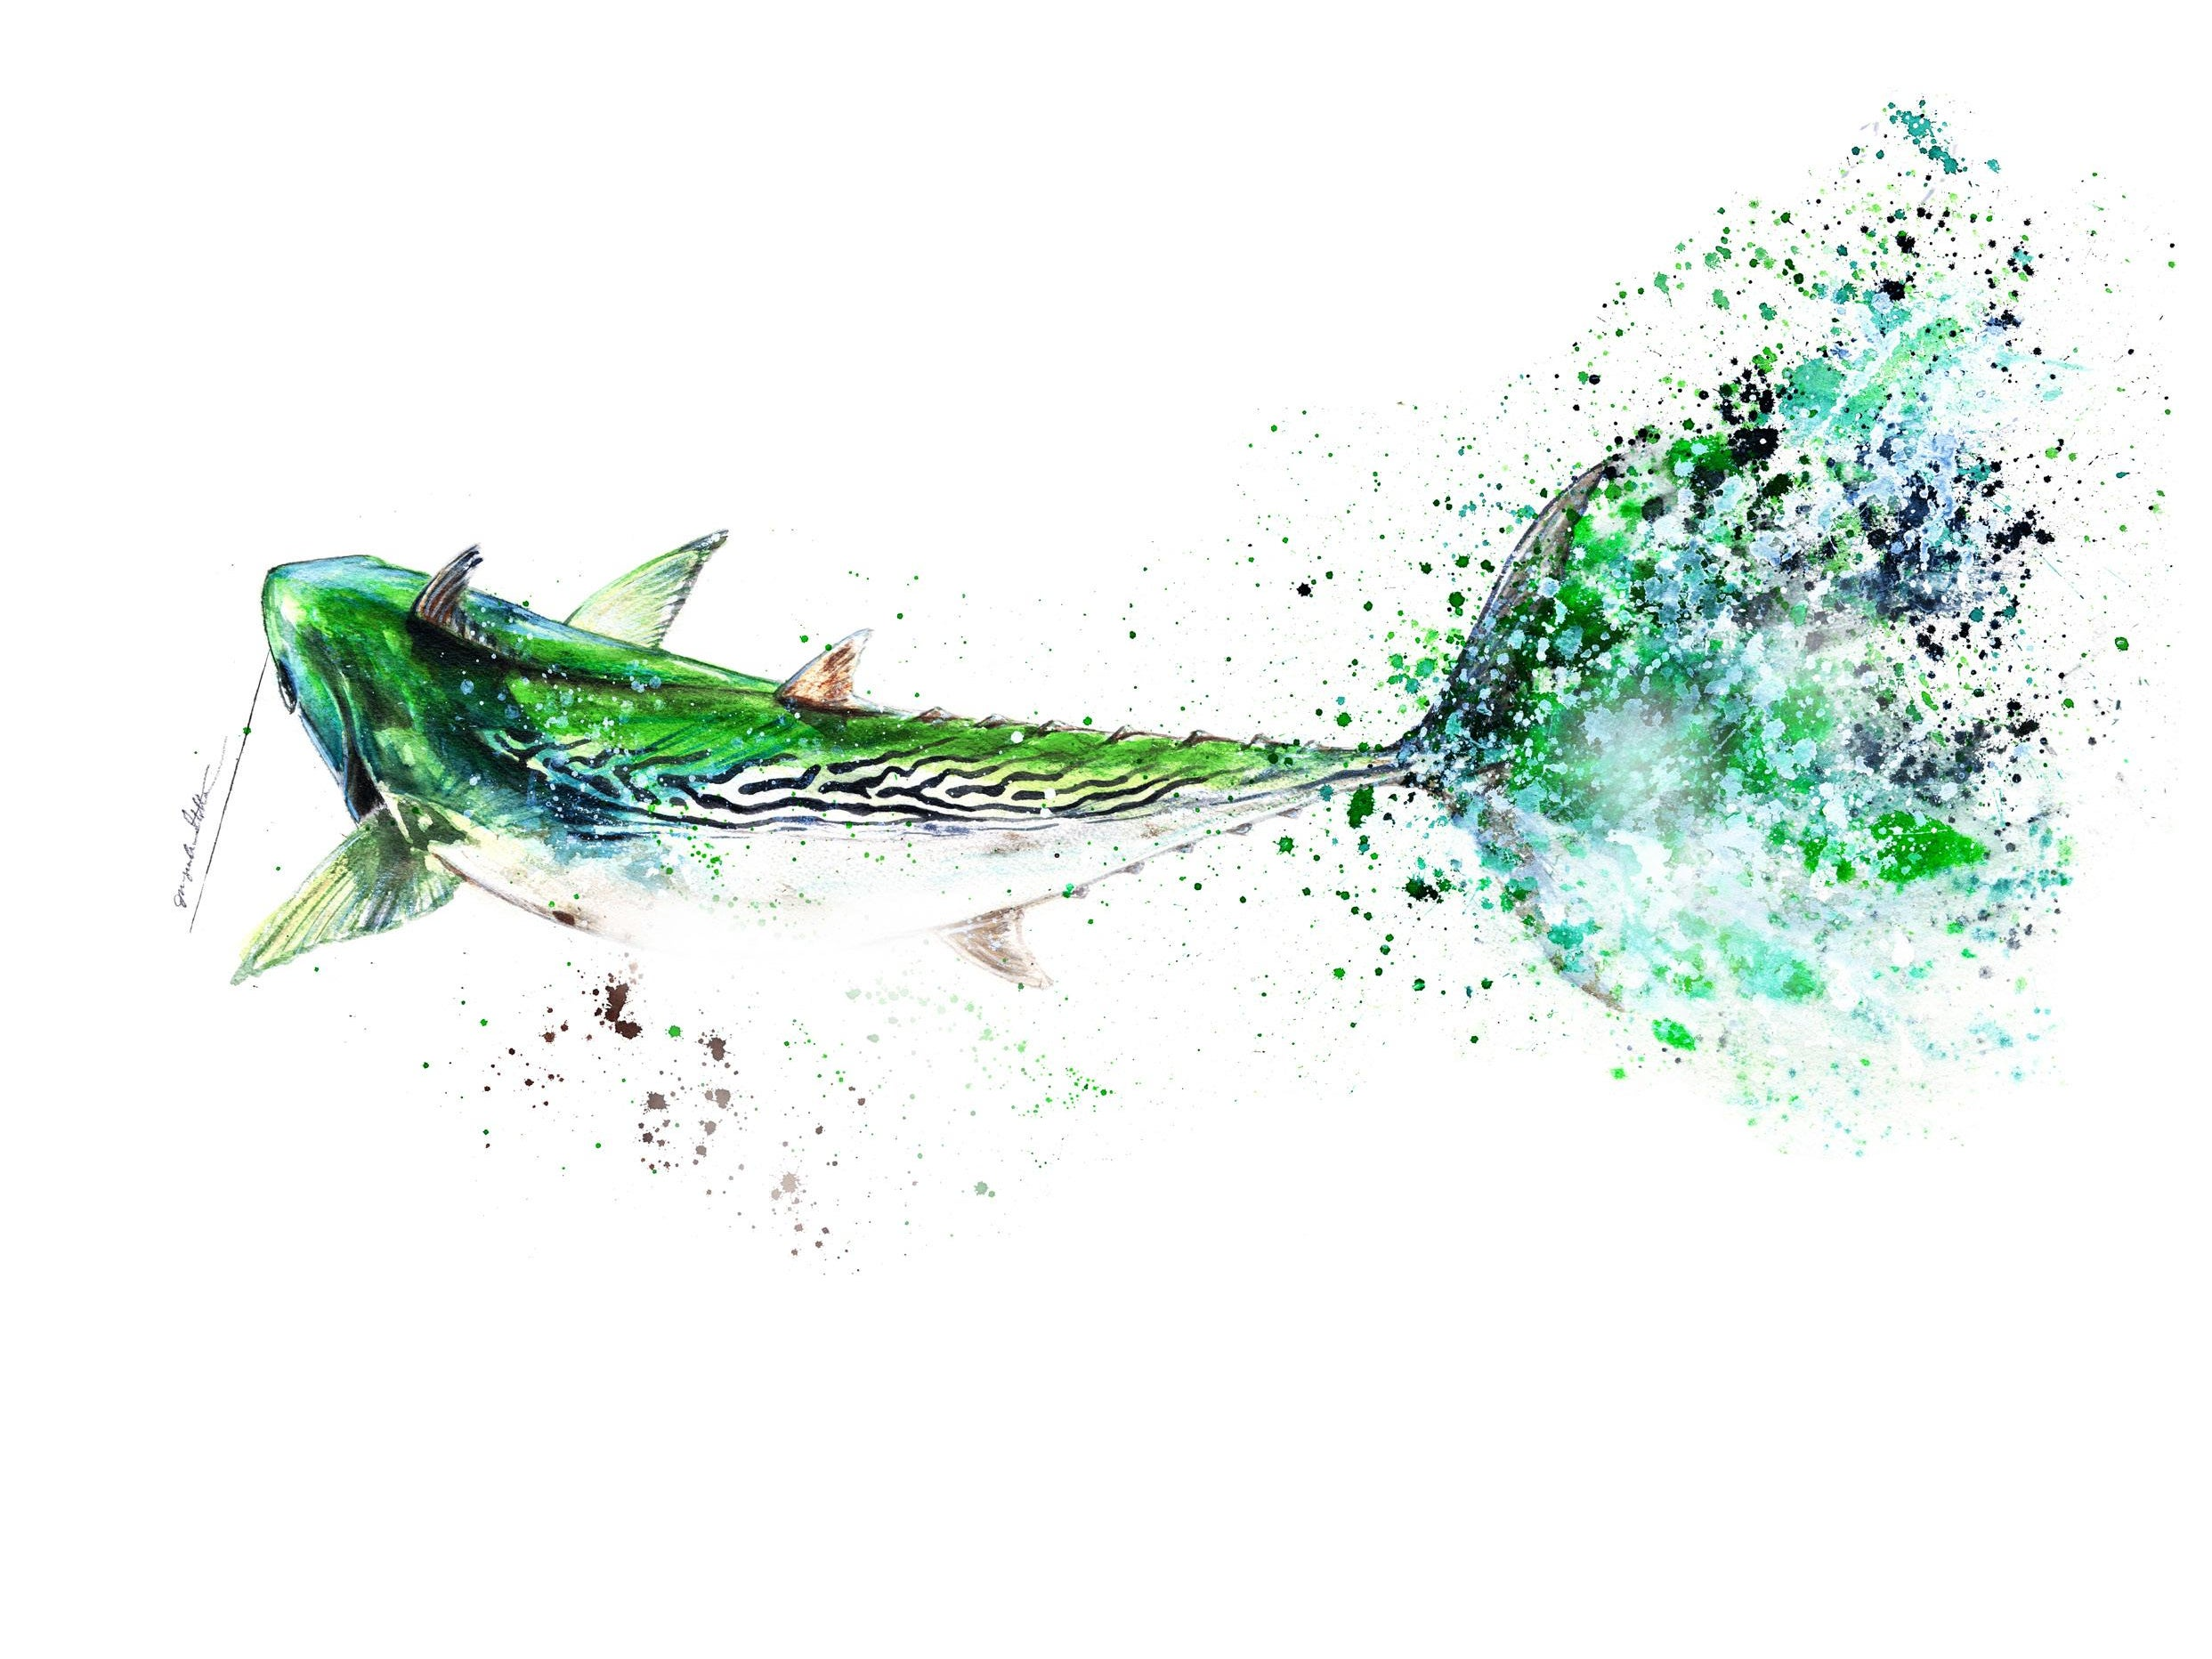 Page 266 of Jacqueline Stella - Music, Water Colours and Fly Fishing